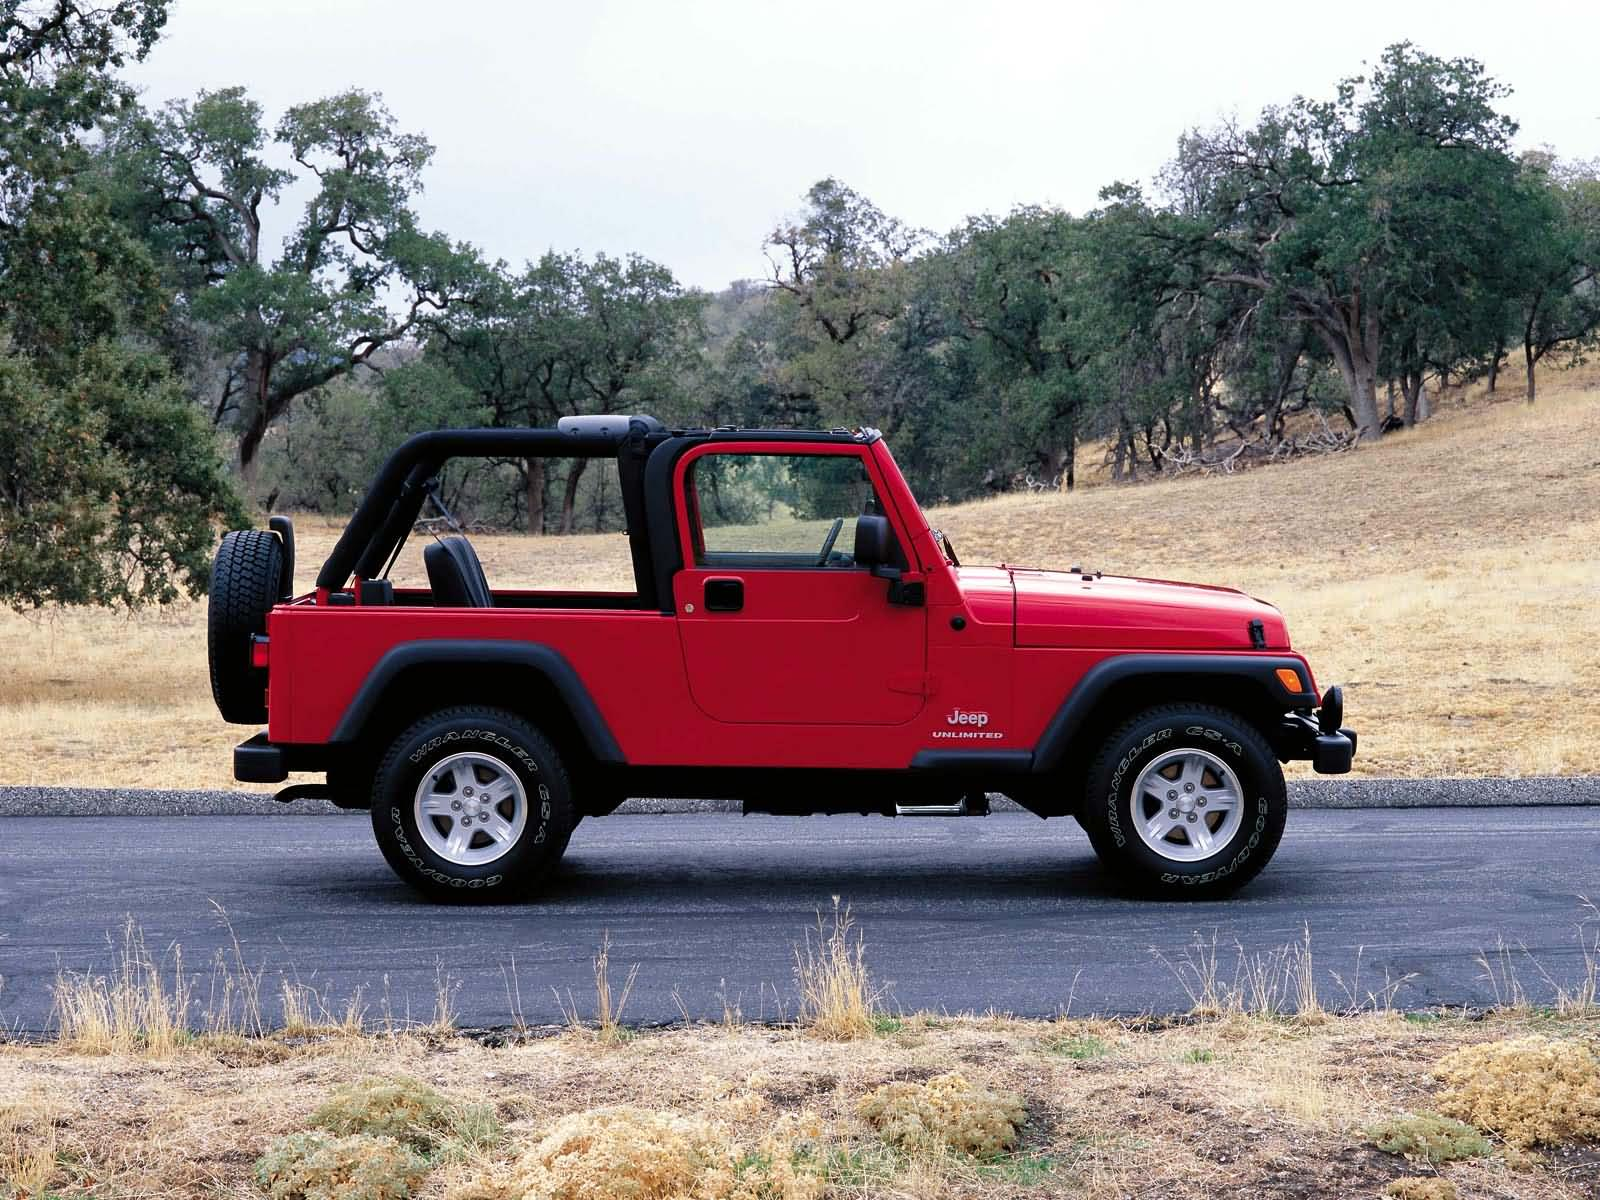 jeep wrangler picture 7871 jeep photo gallery. Black Bedroom Furniture Sets. Home Design Ideas